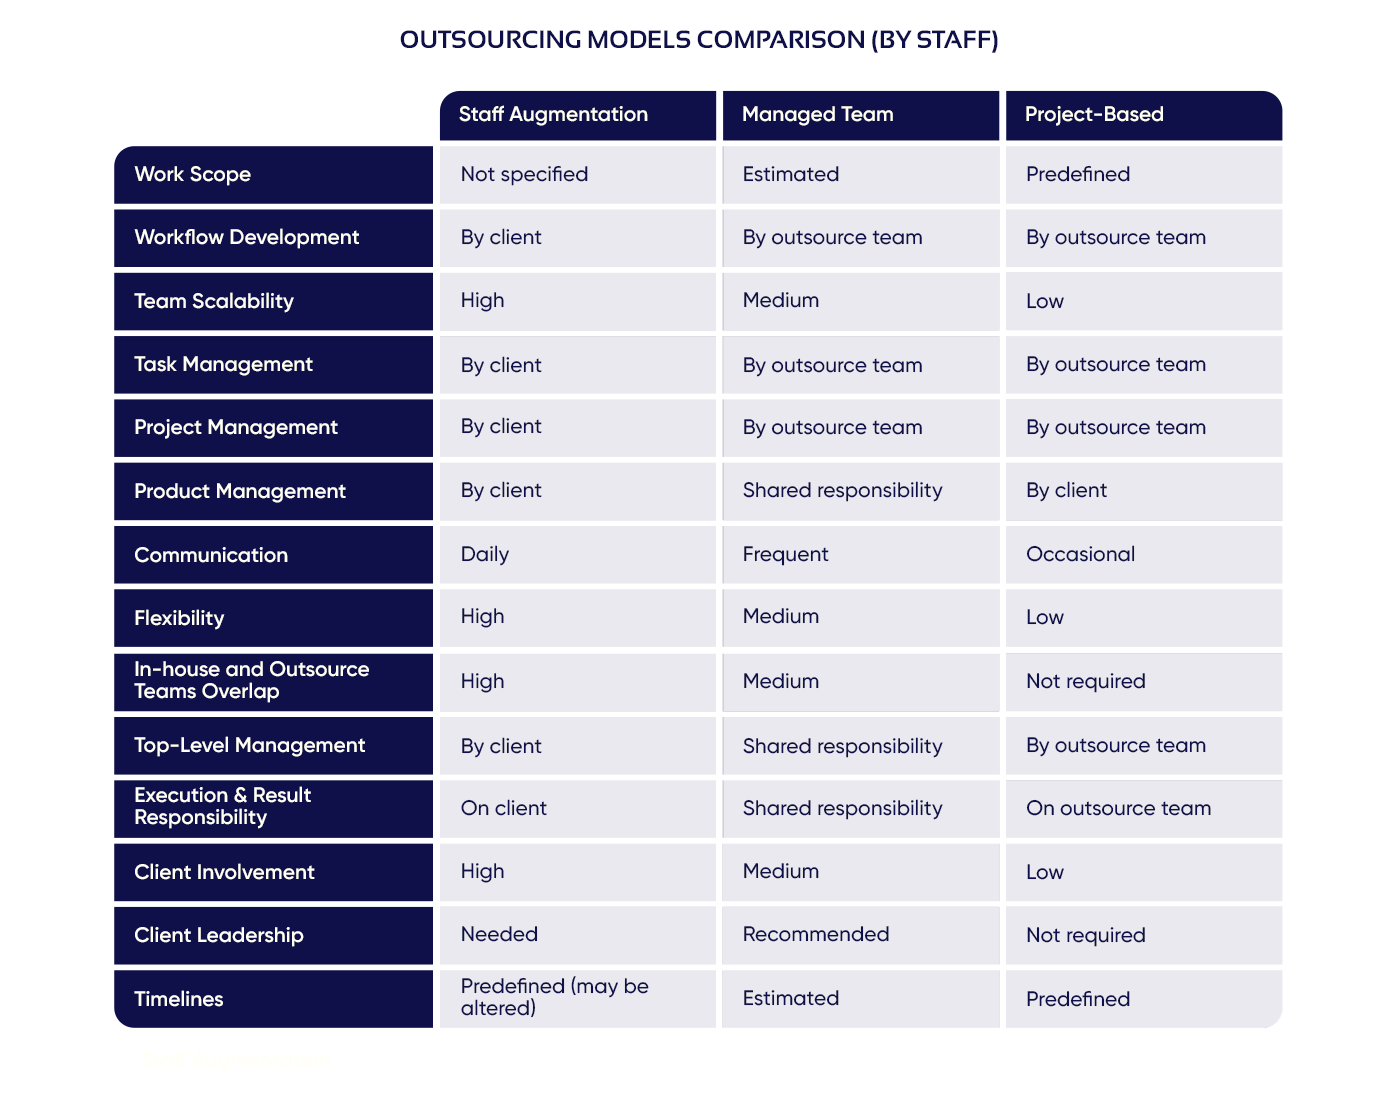 Comparison of staff outsourcing models